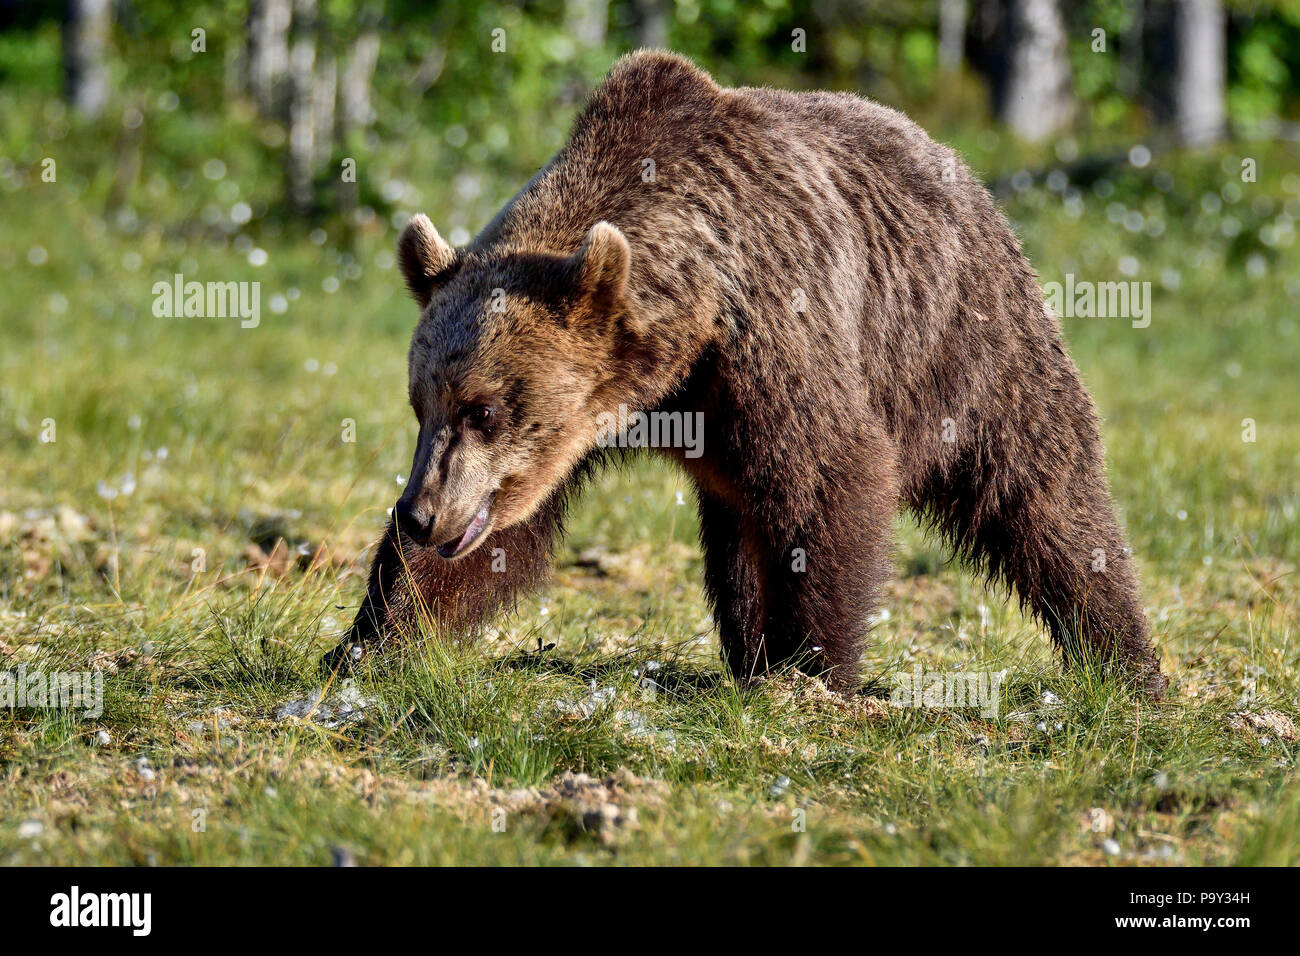 Brown bear is crossing the swamp. Stock Photo